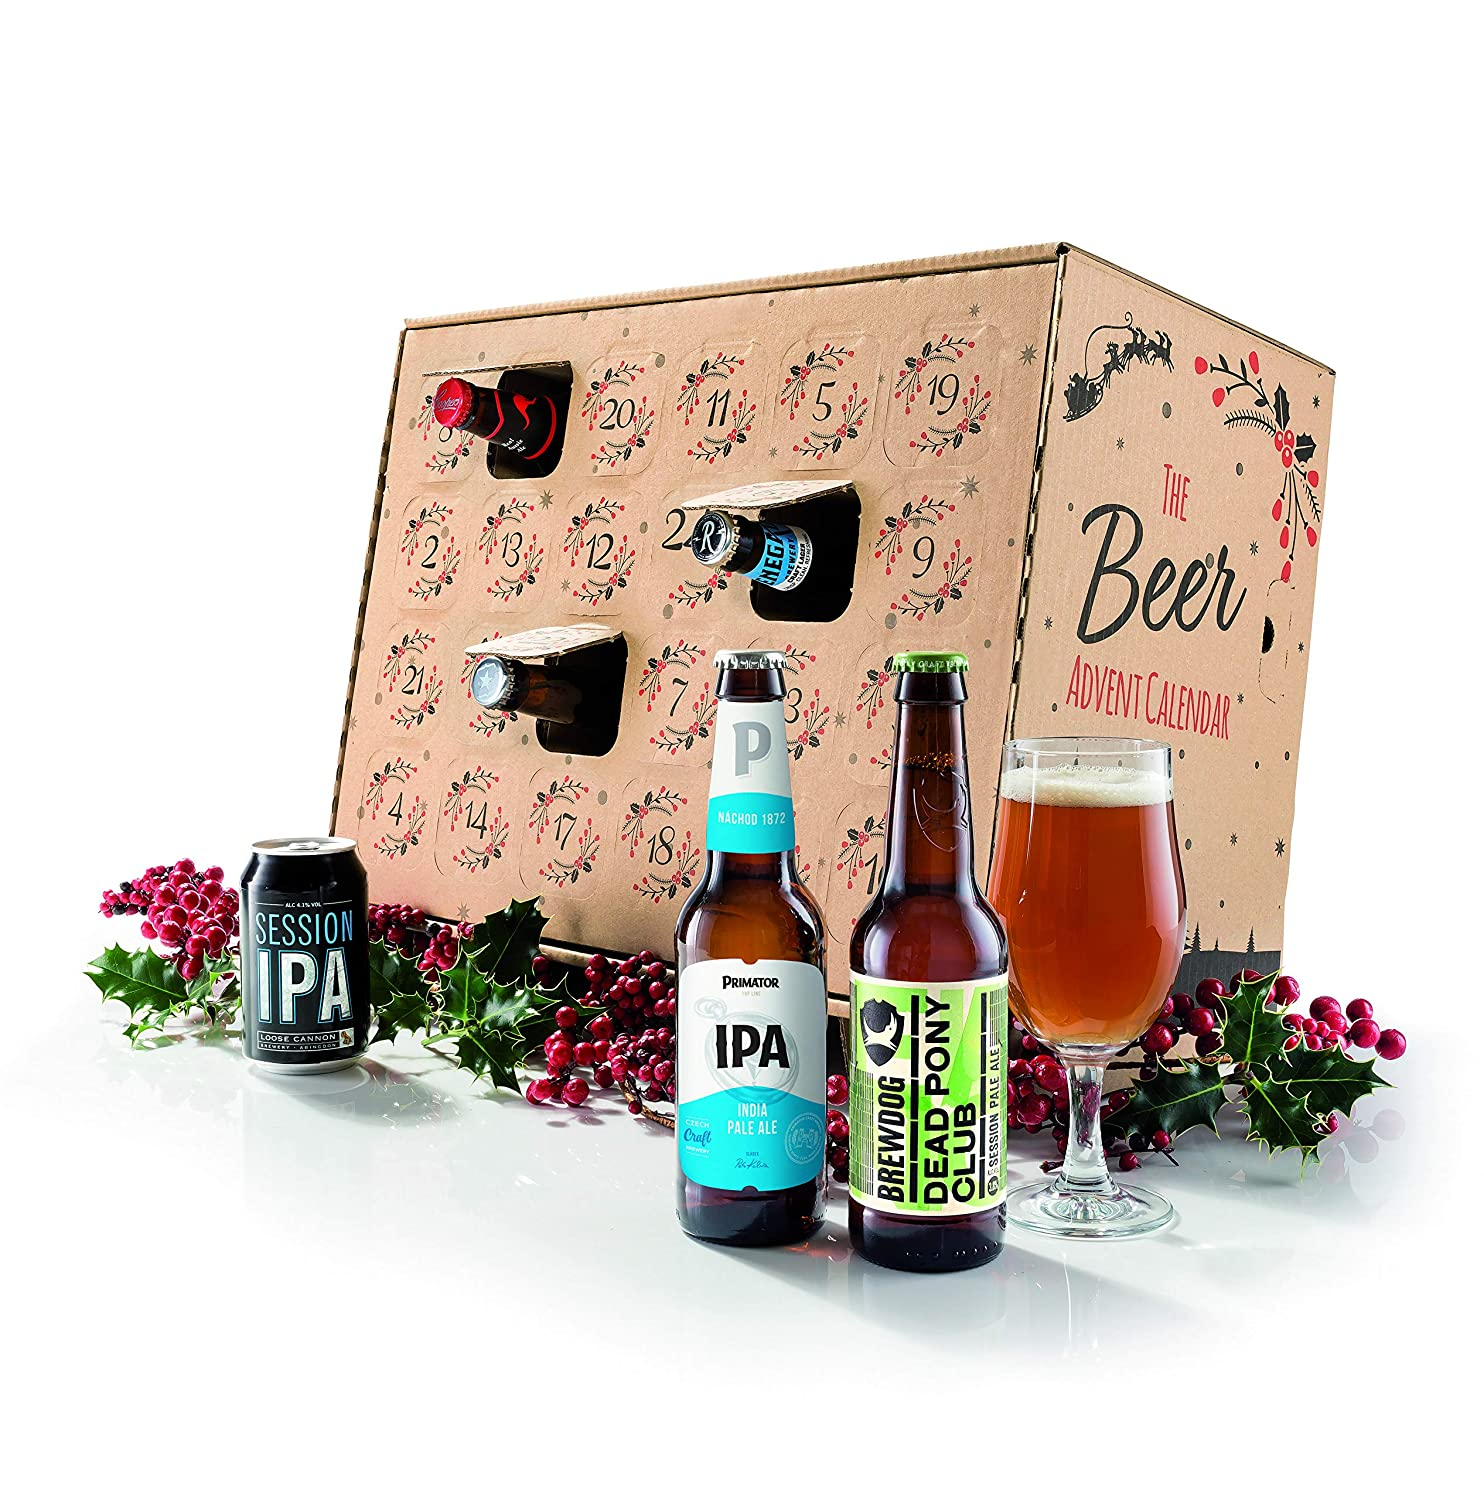 Laithwaites Wine - Craft Beer Advent Calendar 17: Amazon.co.uk: Beer, Wine  & Spirits